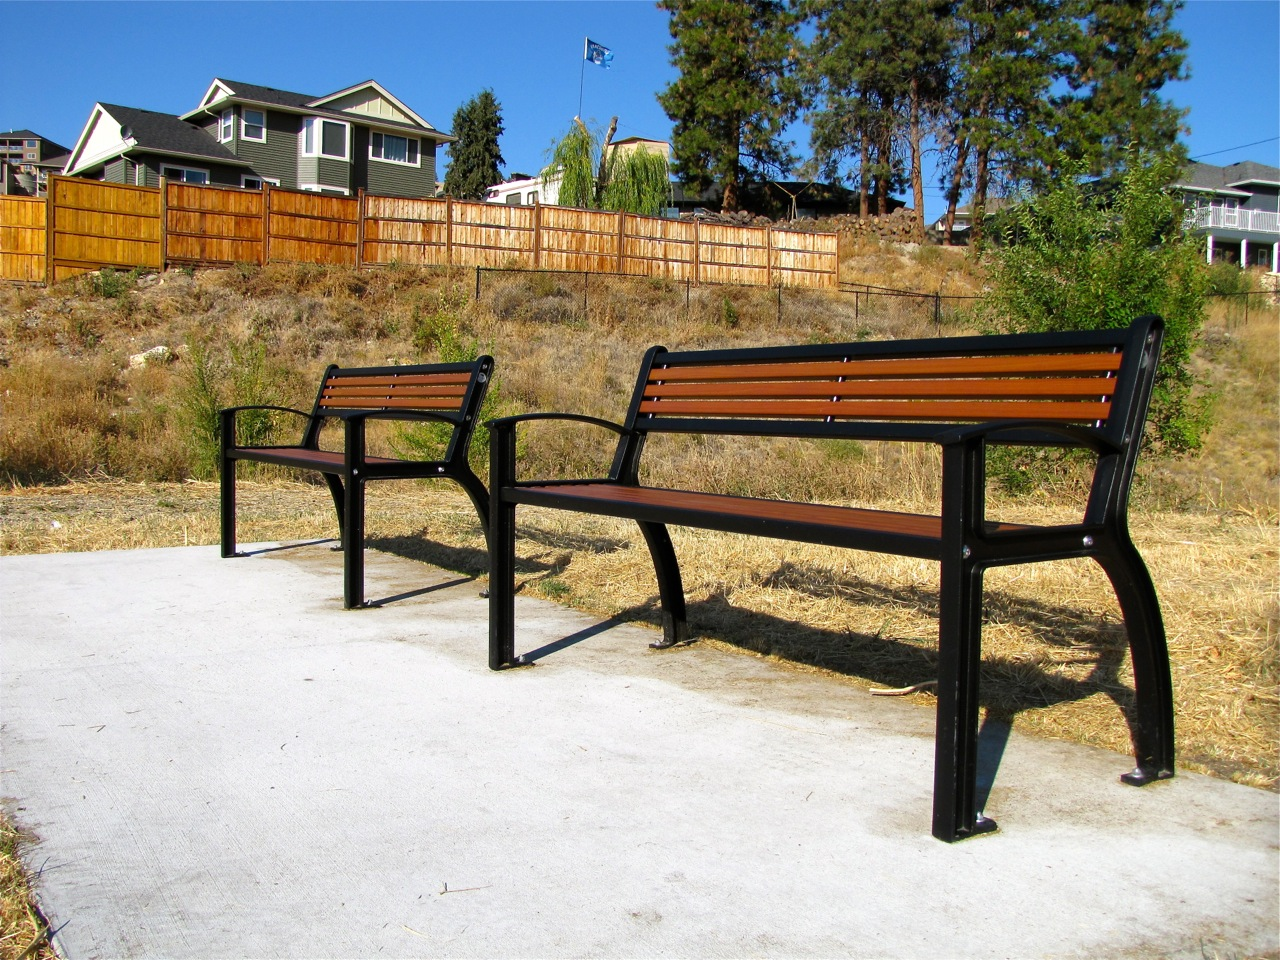 Beselt Park Bench All Metal Wishbone Site Furnishings